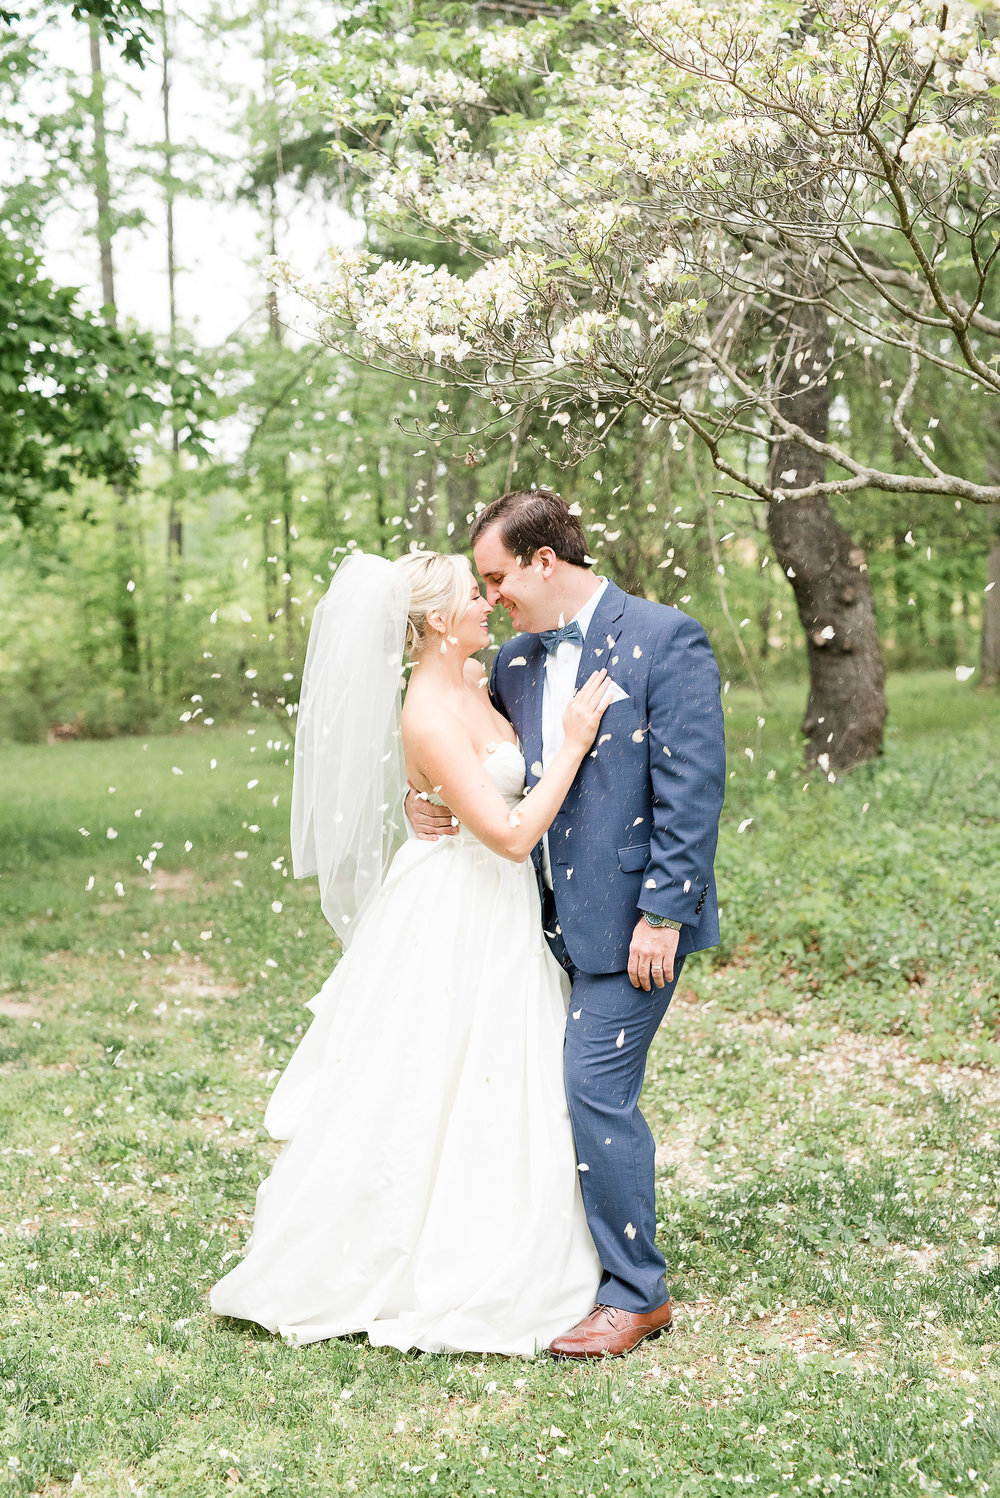 SlaybaughWedding_CaitisFaves_CGP-428.jpg